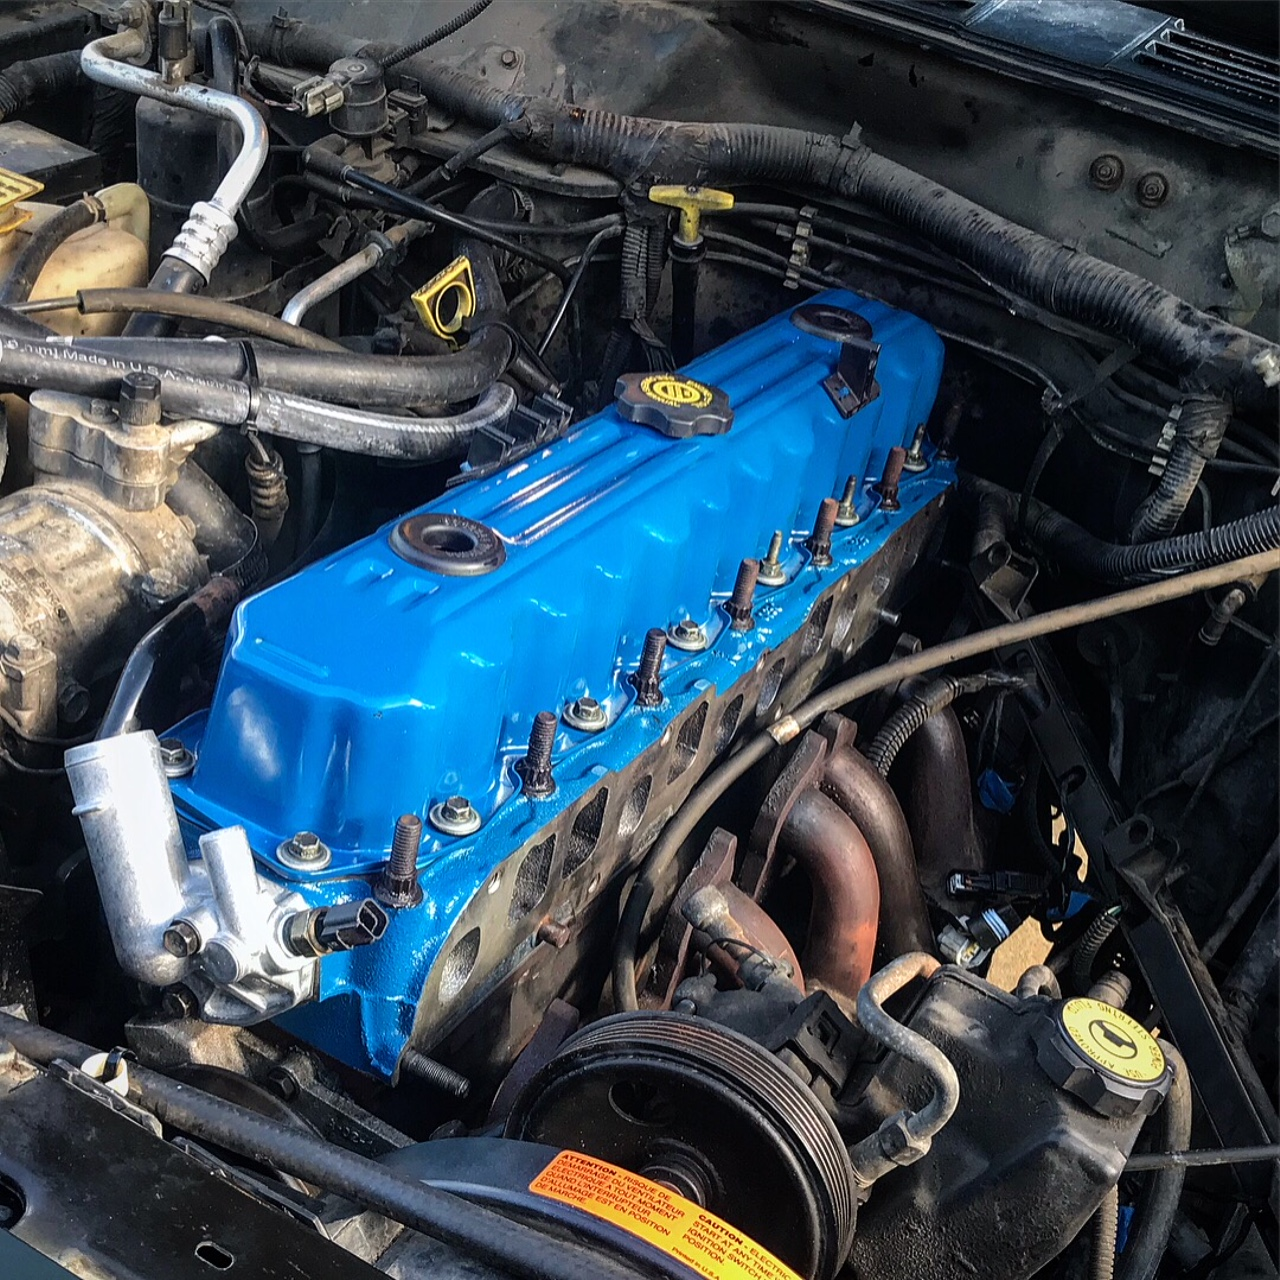 Project Cherokeeper: Blown Head Gasket! Time to Rebuild the